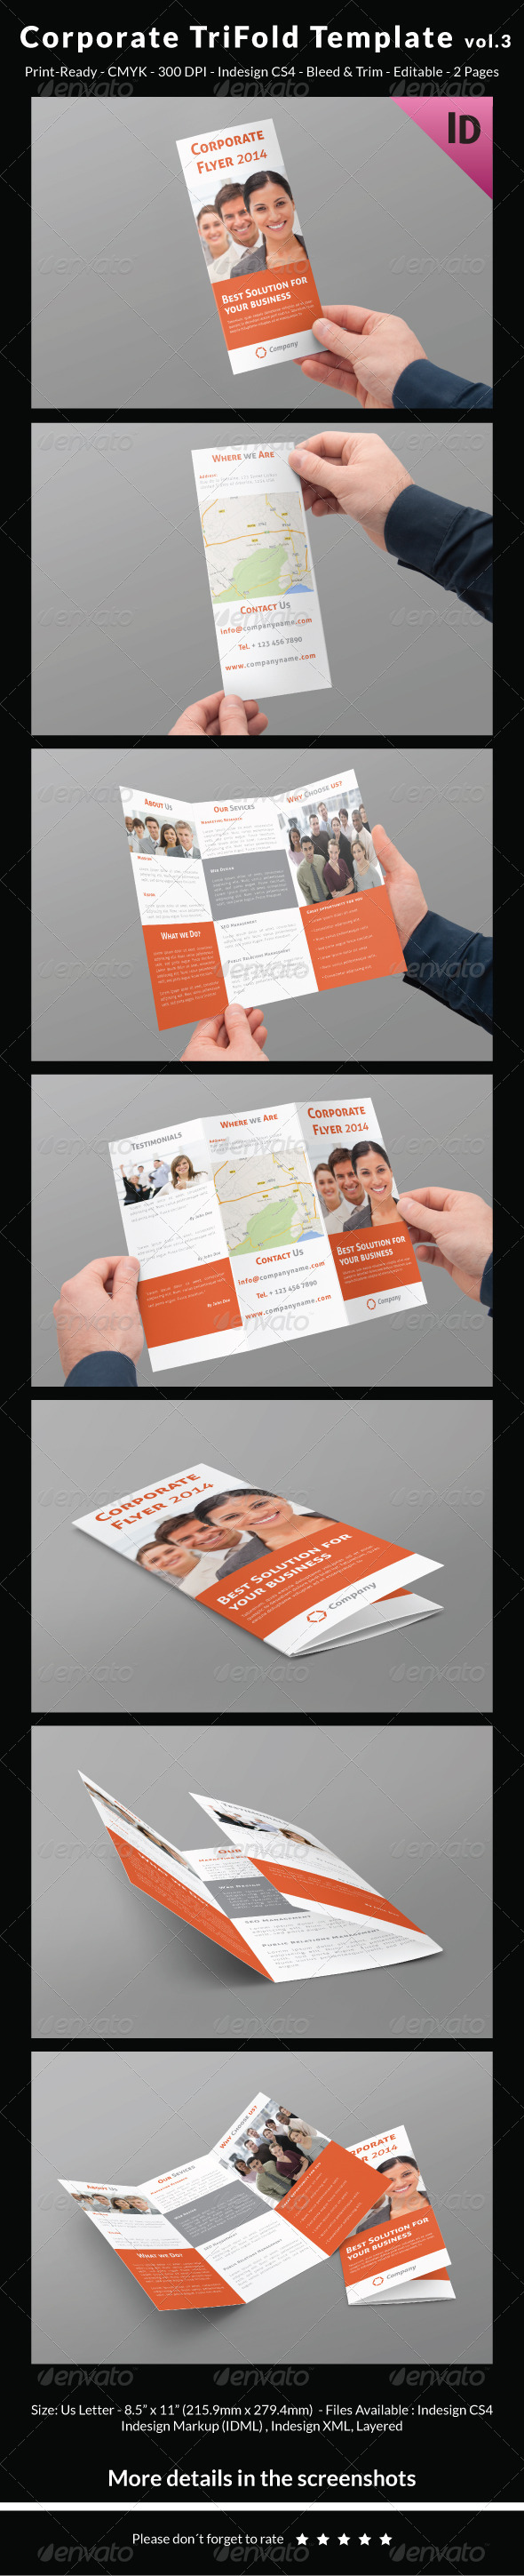 GraphicRiver Corporate Trifold Template vol.3 7186792